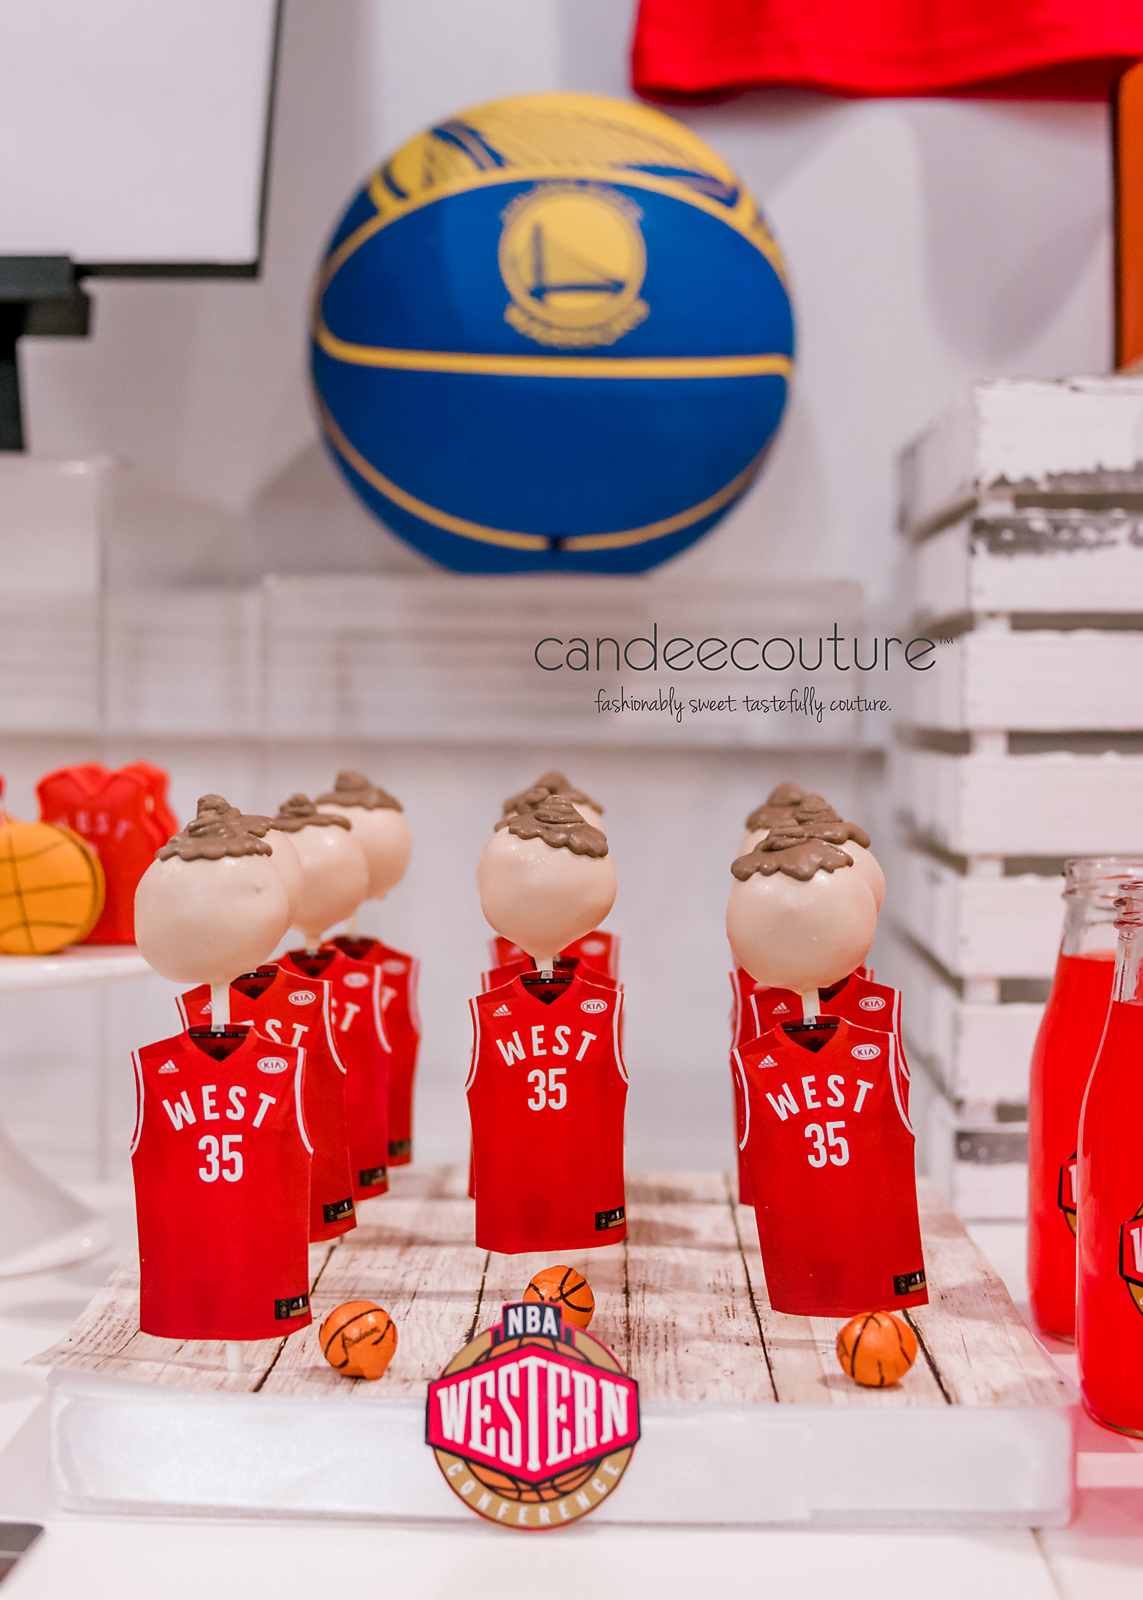 golden state warriors dessert table, warriors sweet table, NBA jersey cake pops, NBA cake pops, western conference cake pops, NBA western conference cake pops, NBA western conference all-star cake pops, Basketball treats, NBA basketball cake pops, NBA All-star desserts, candy table, sweet table, nba themed party, golden state warriors party, nba all-star theme party, birthday, nba all-star theme, nba cake, basketball, basketball desserts nba theme table, nba all-star theme table,